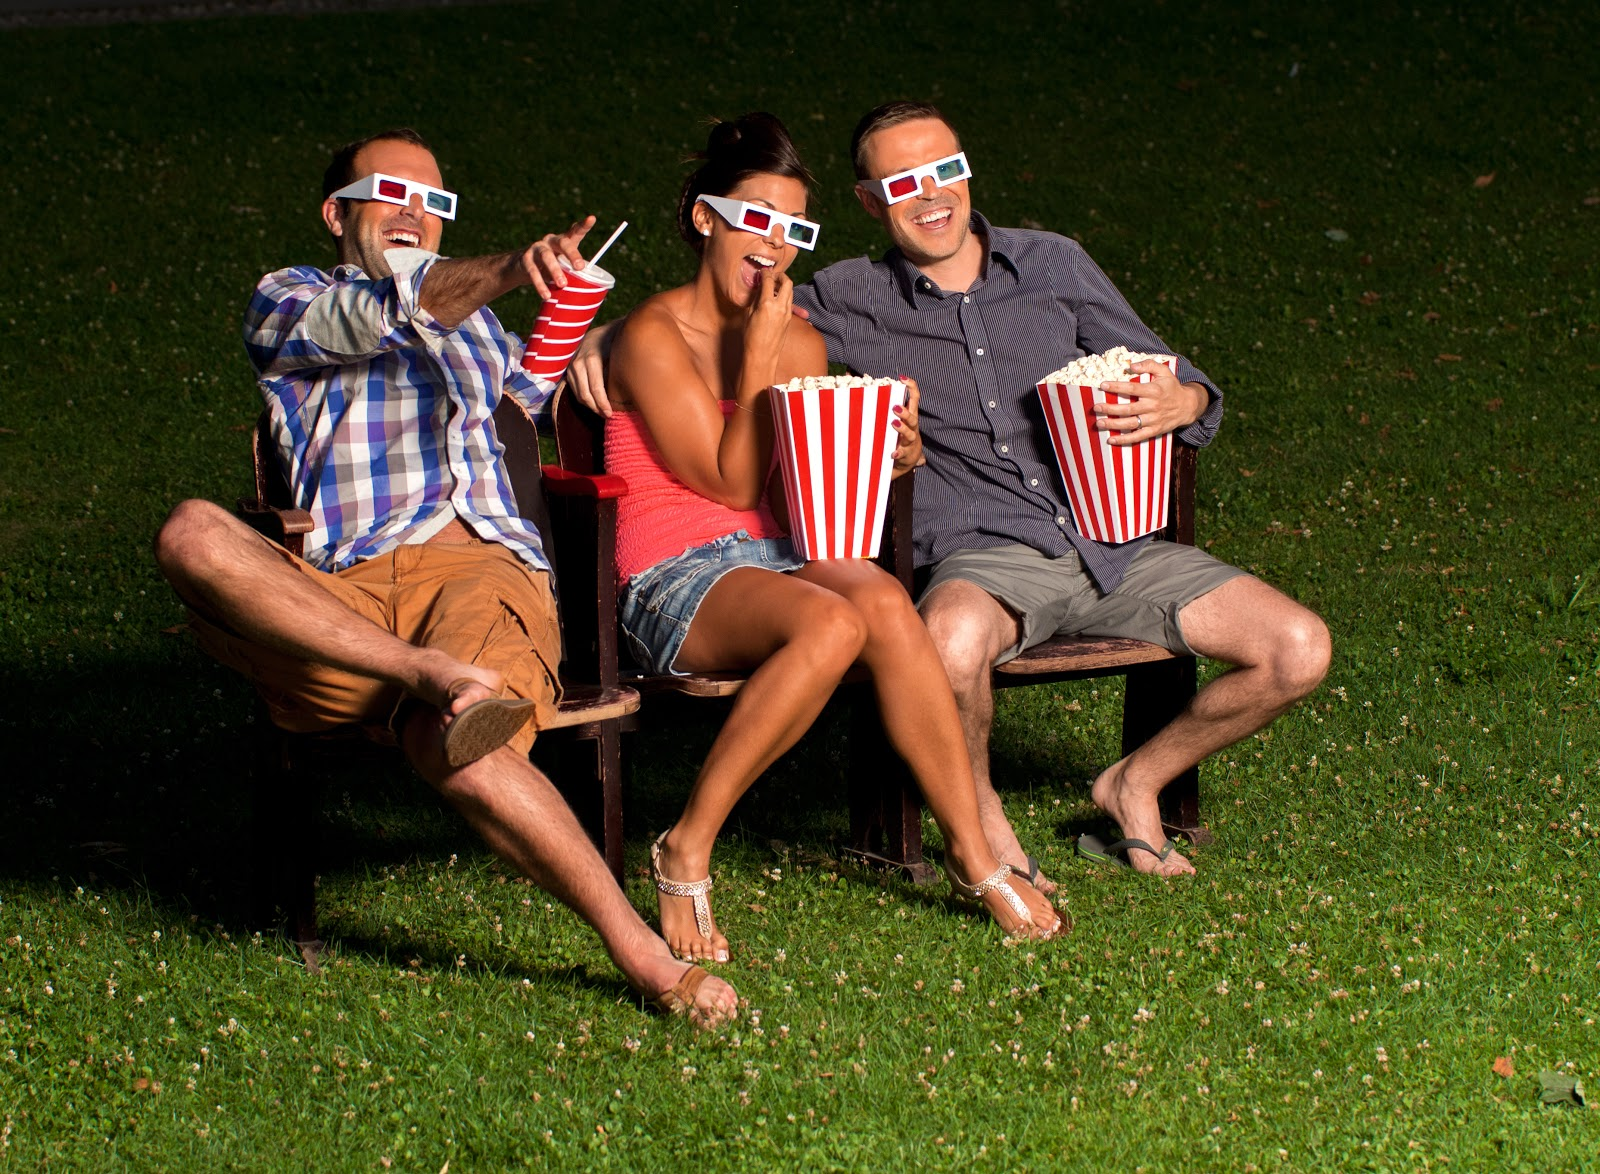 outdoor movie night: Friends watching a 3D movie outdoors while eating popcorn